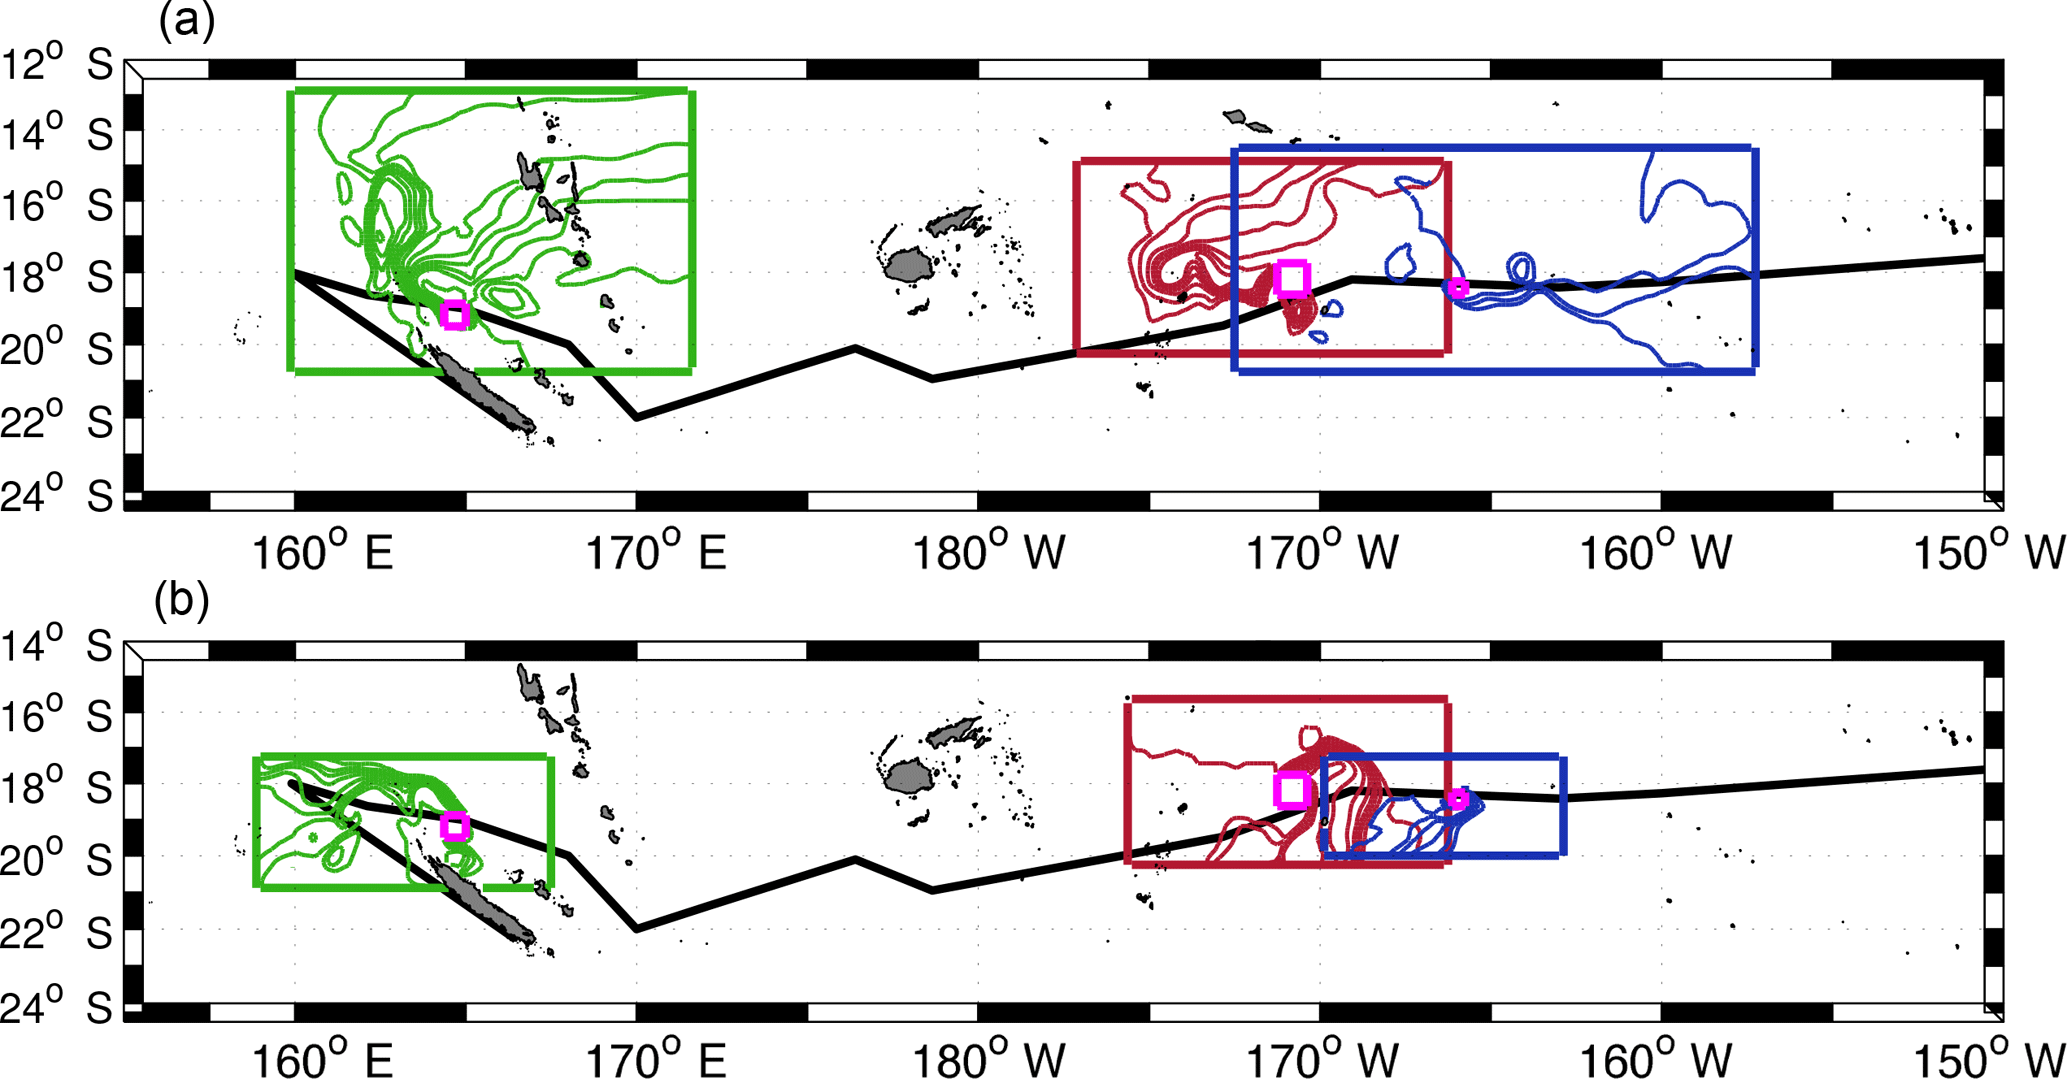 BG - Large- to submesoscale surface circulation and its implications